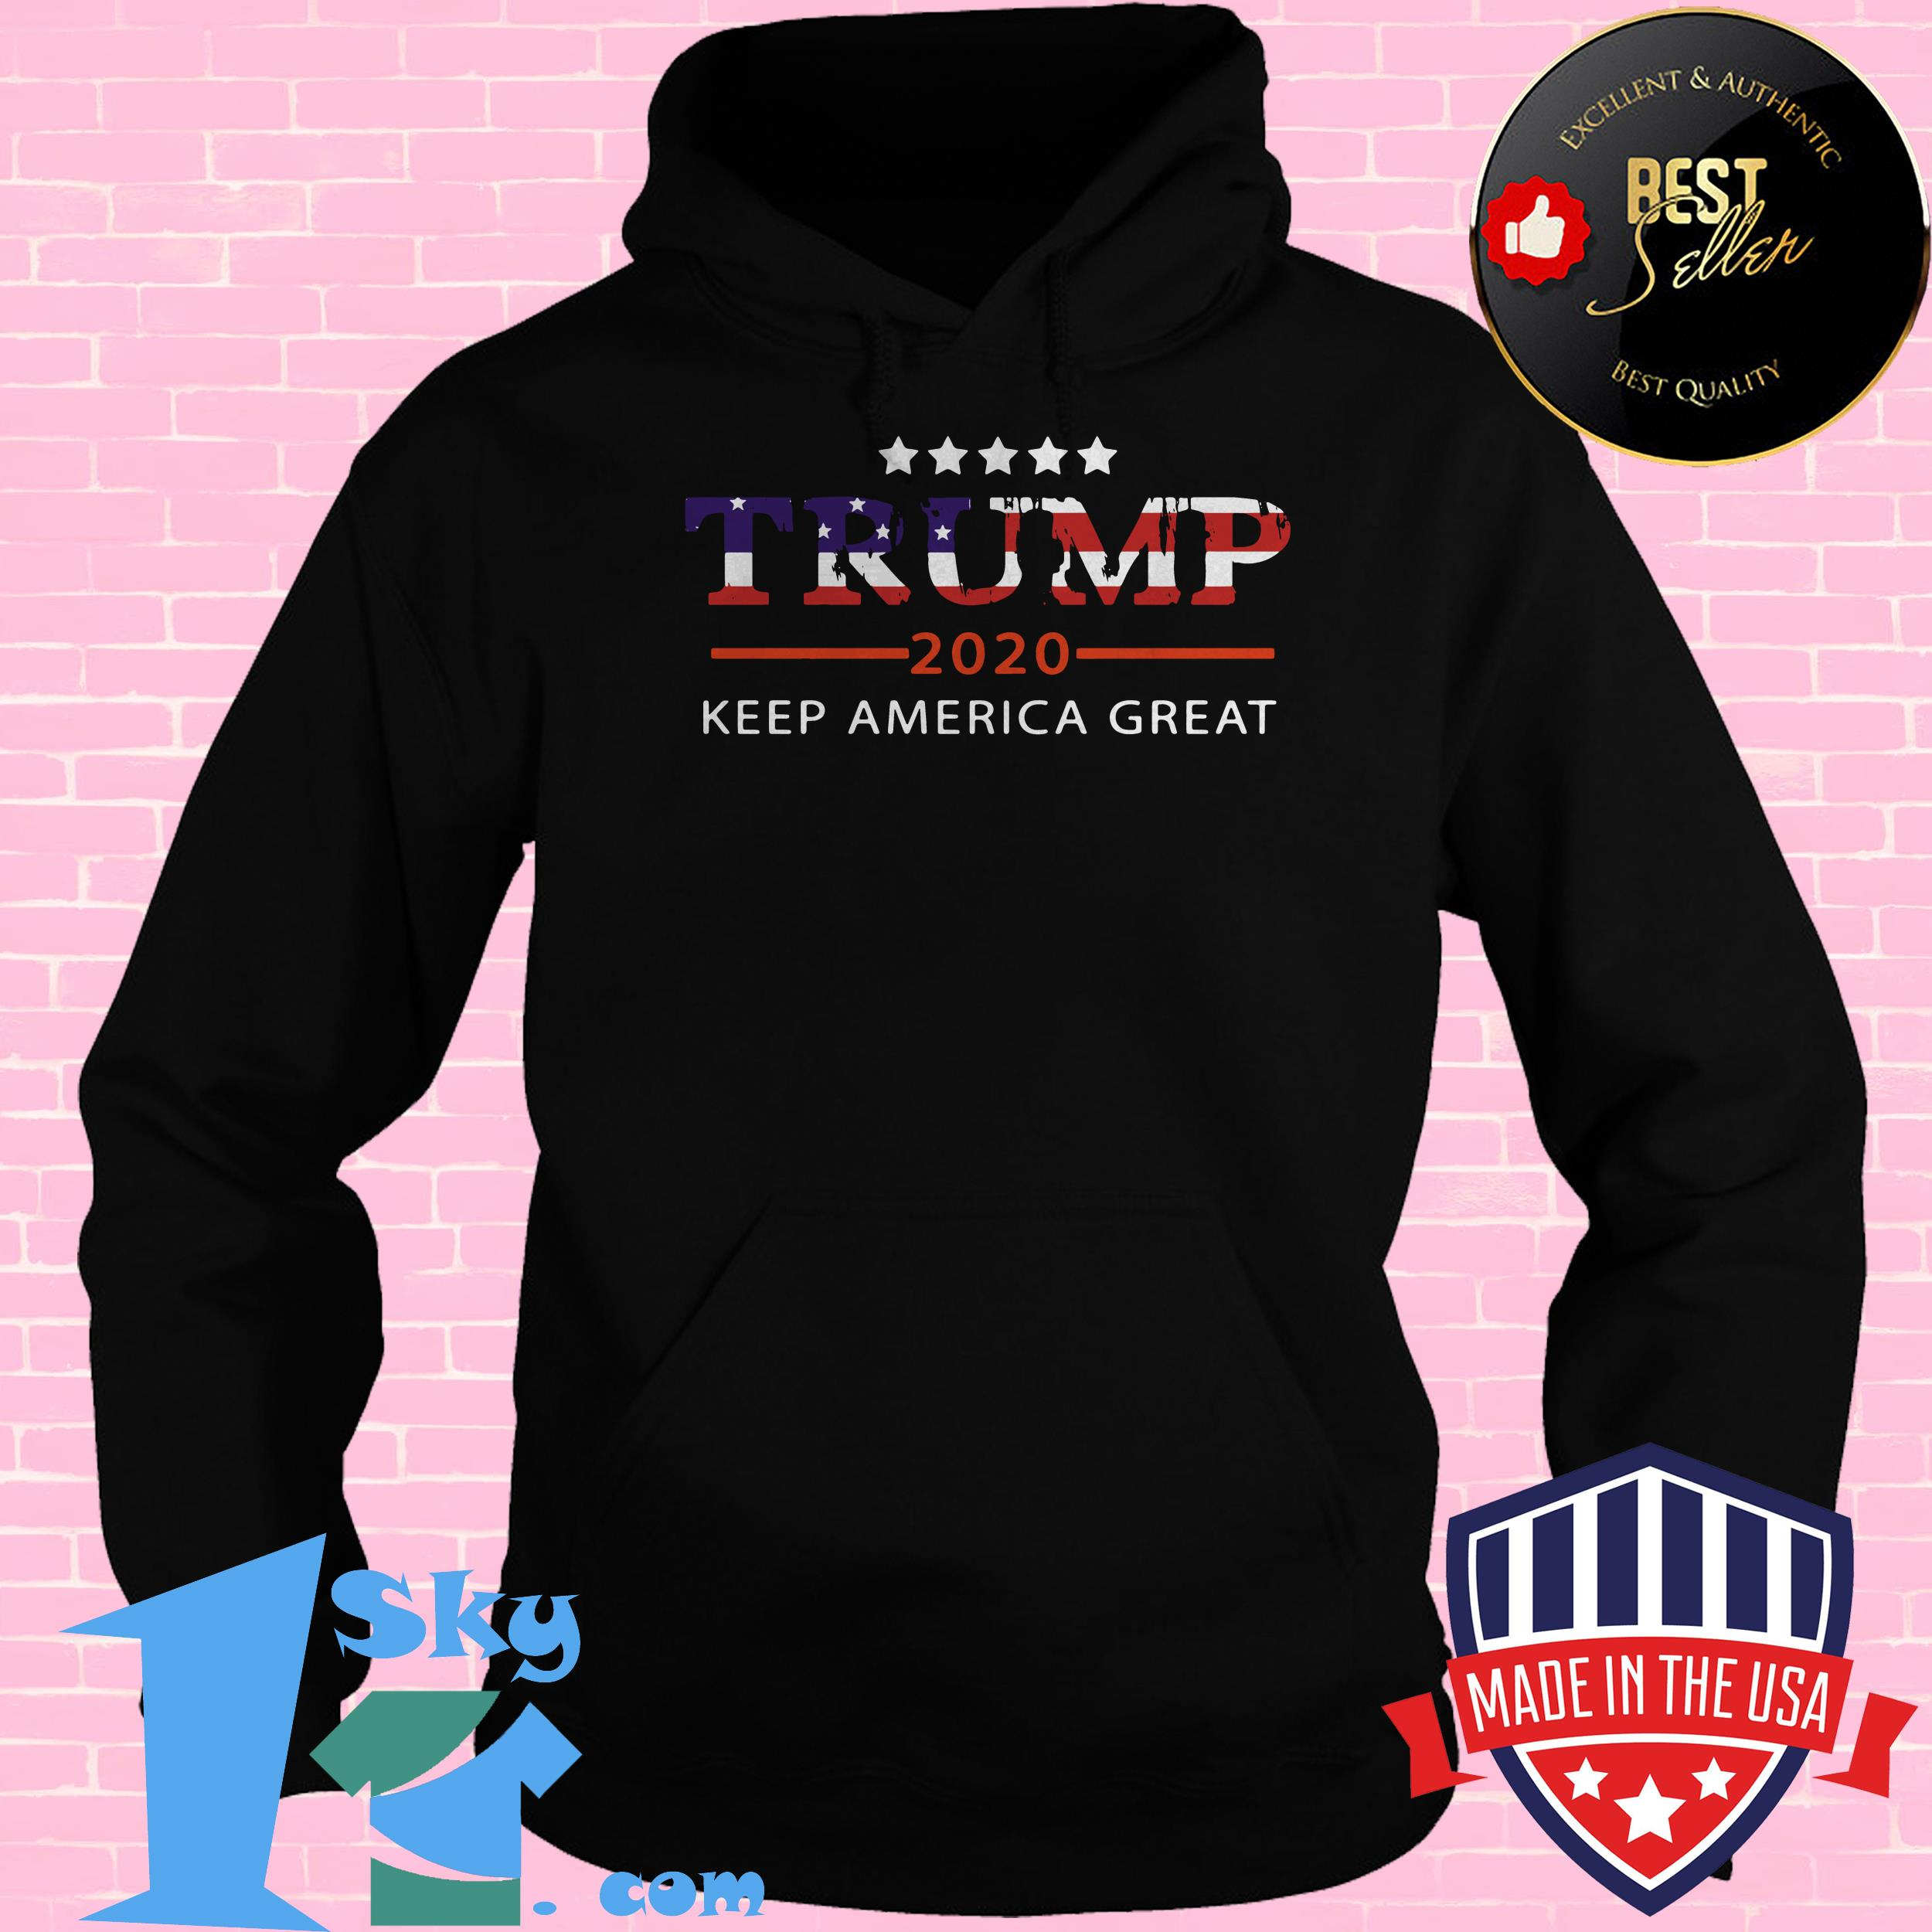 trump 2020 keep america great hoodie - Trump 2020 Keep America Great Shirt